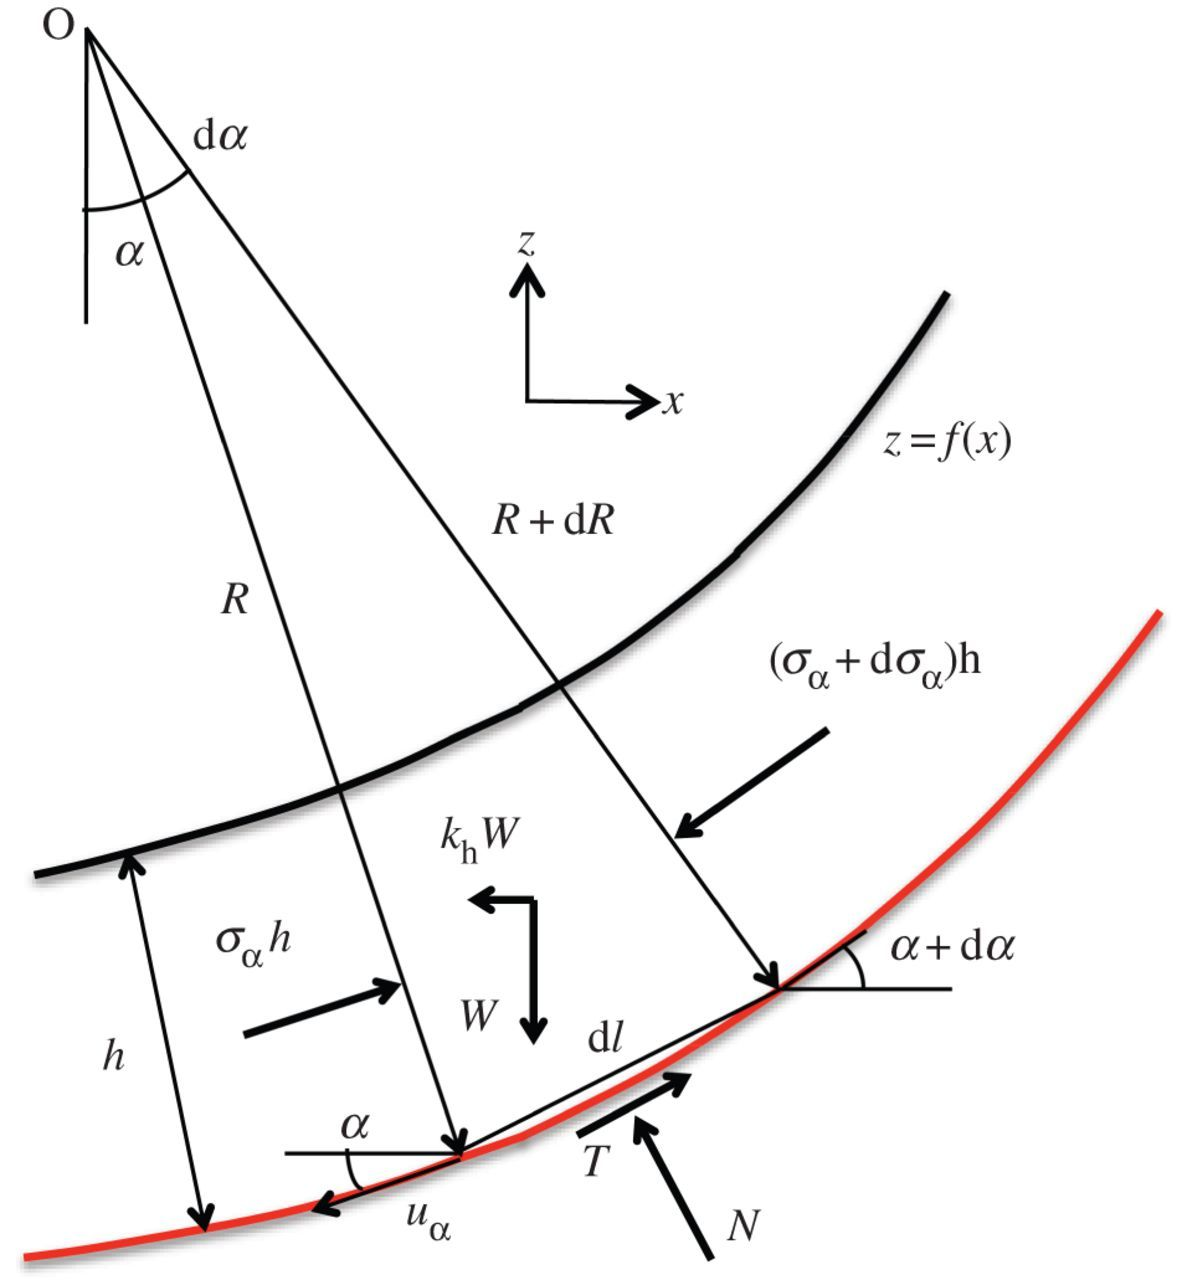 Significance of the actual nonlinear slope geometry for